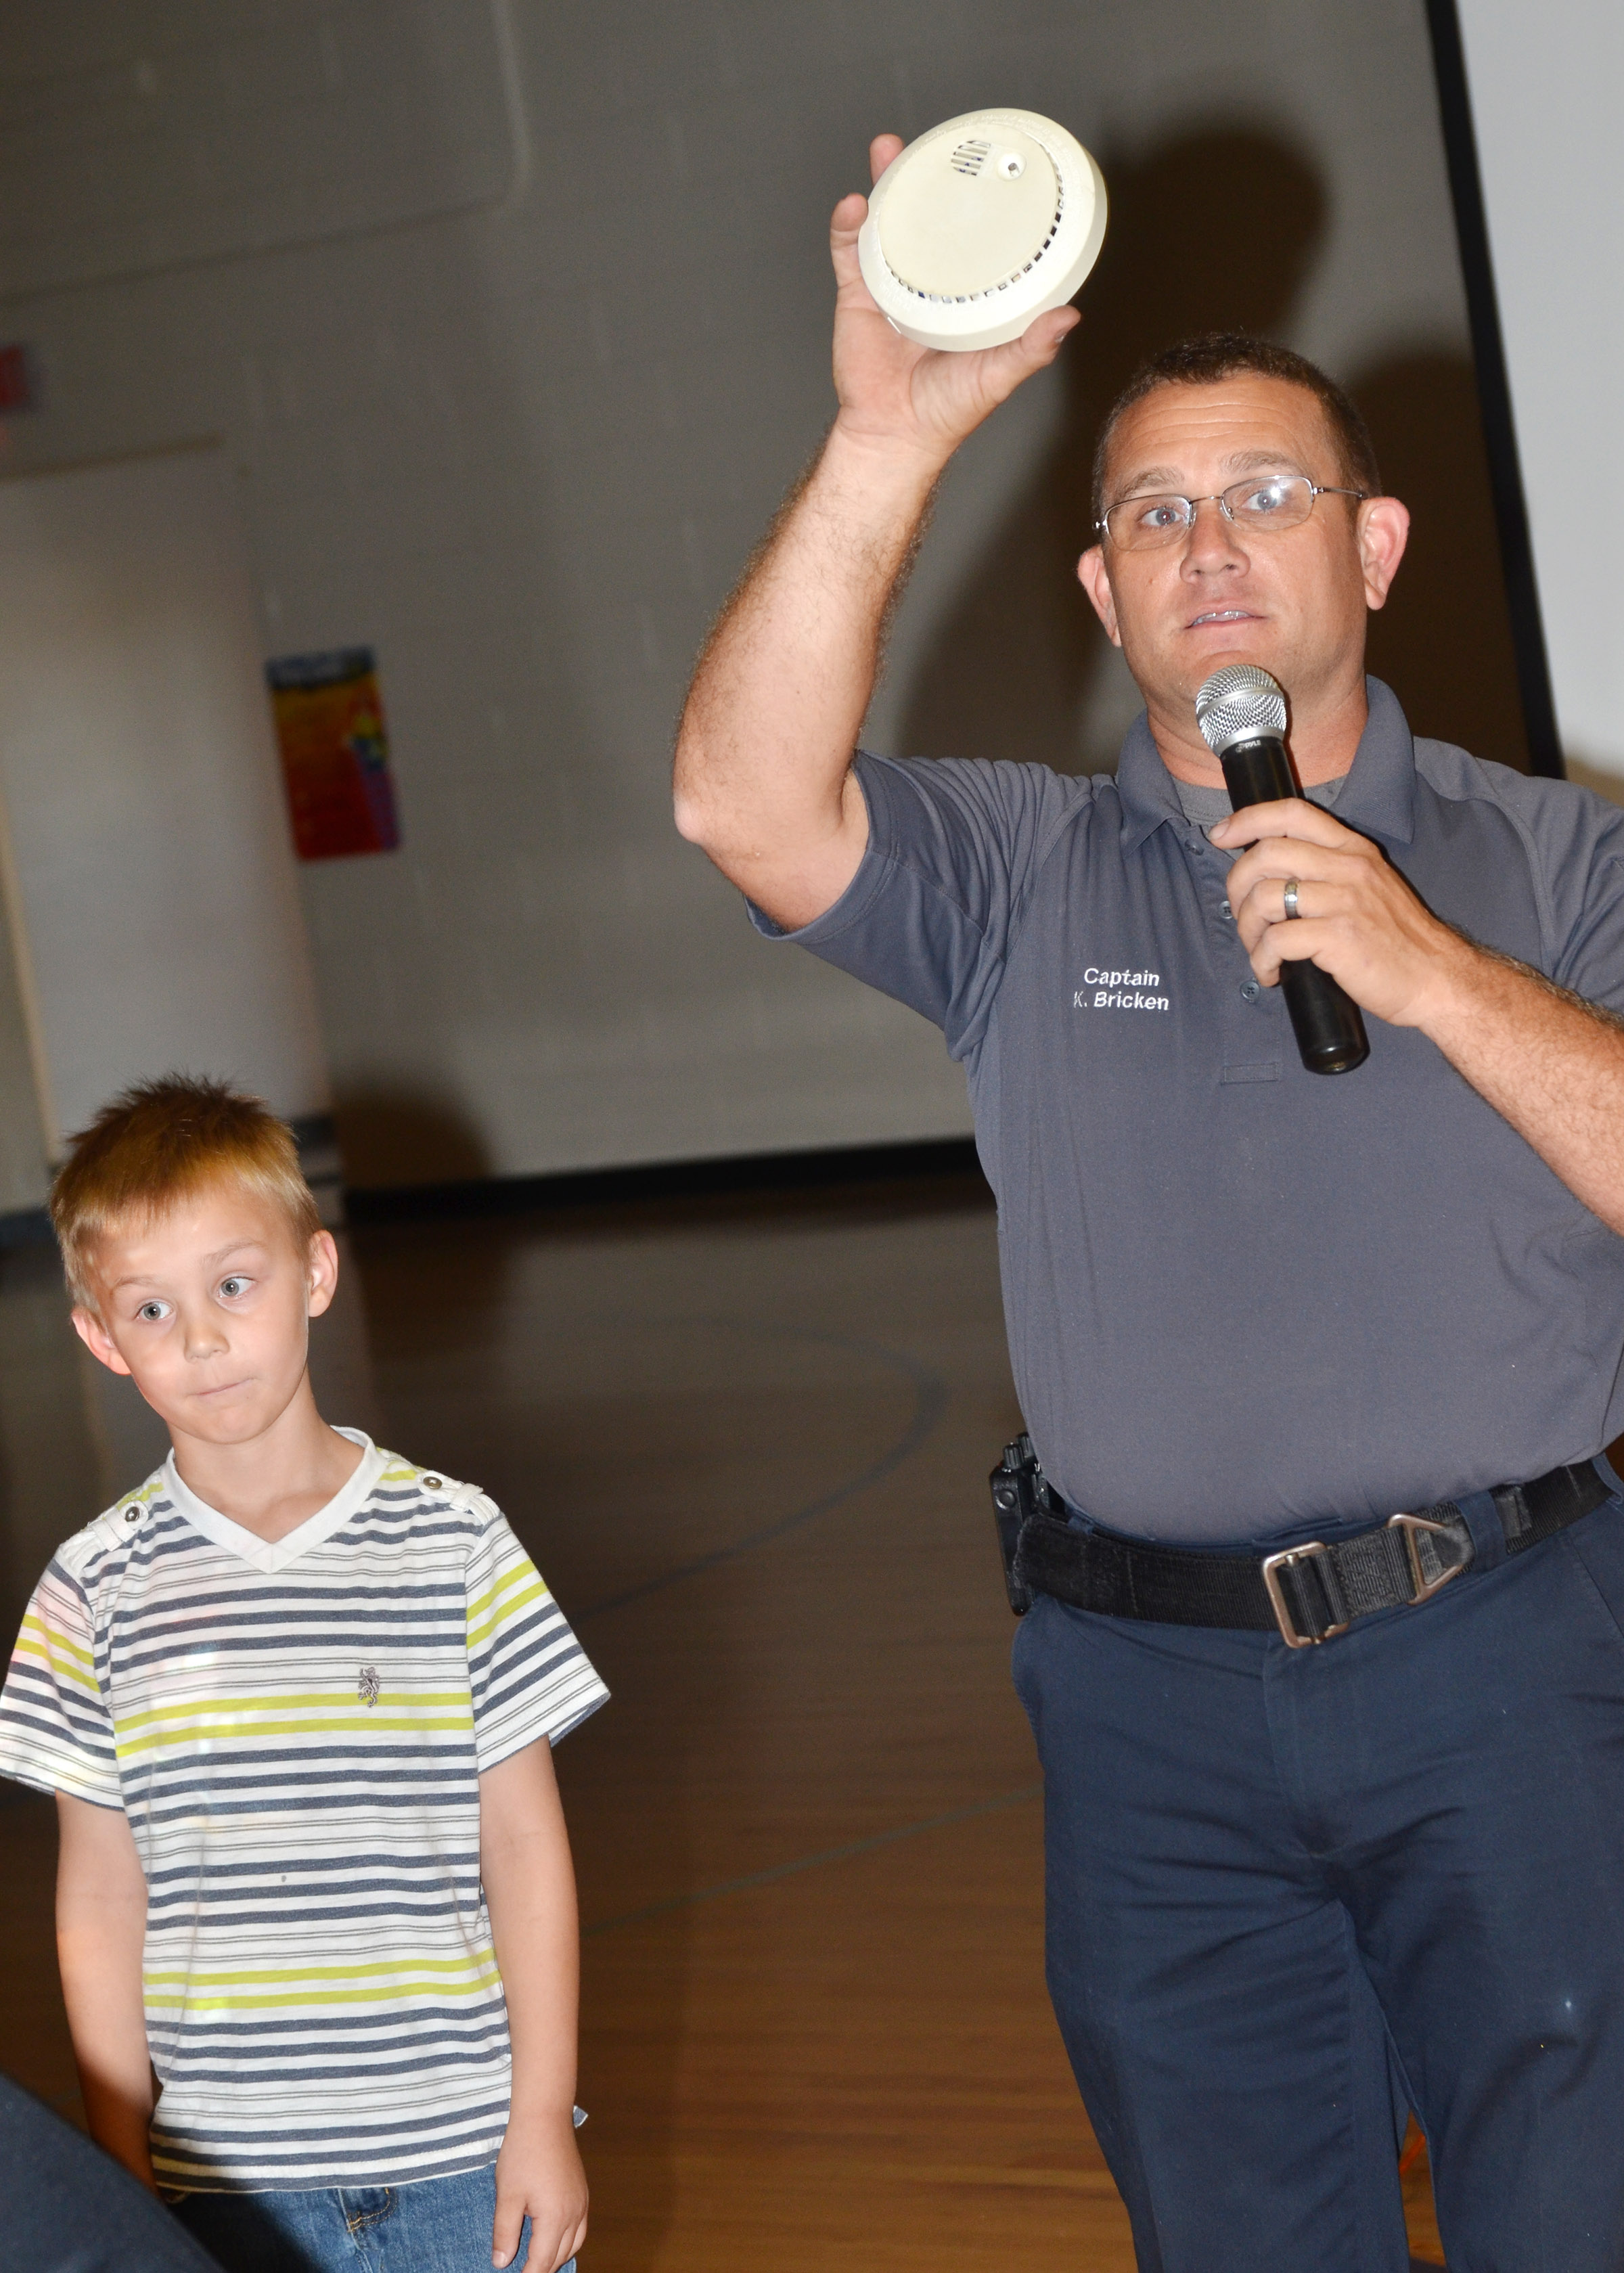 Campbellsville Fire & Rescue Captain Keith Bricken shows CES students how to check the battery in a smoke detector, with help from second-grader Hunter Bates.